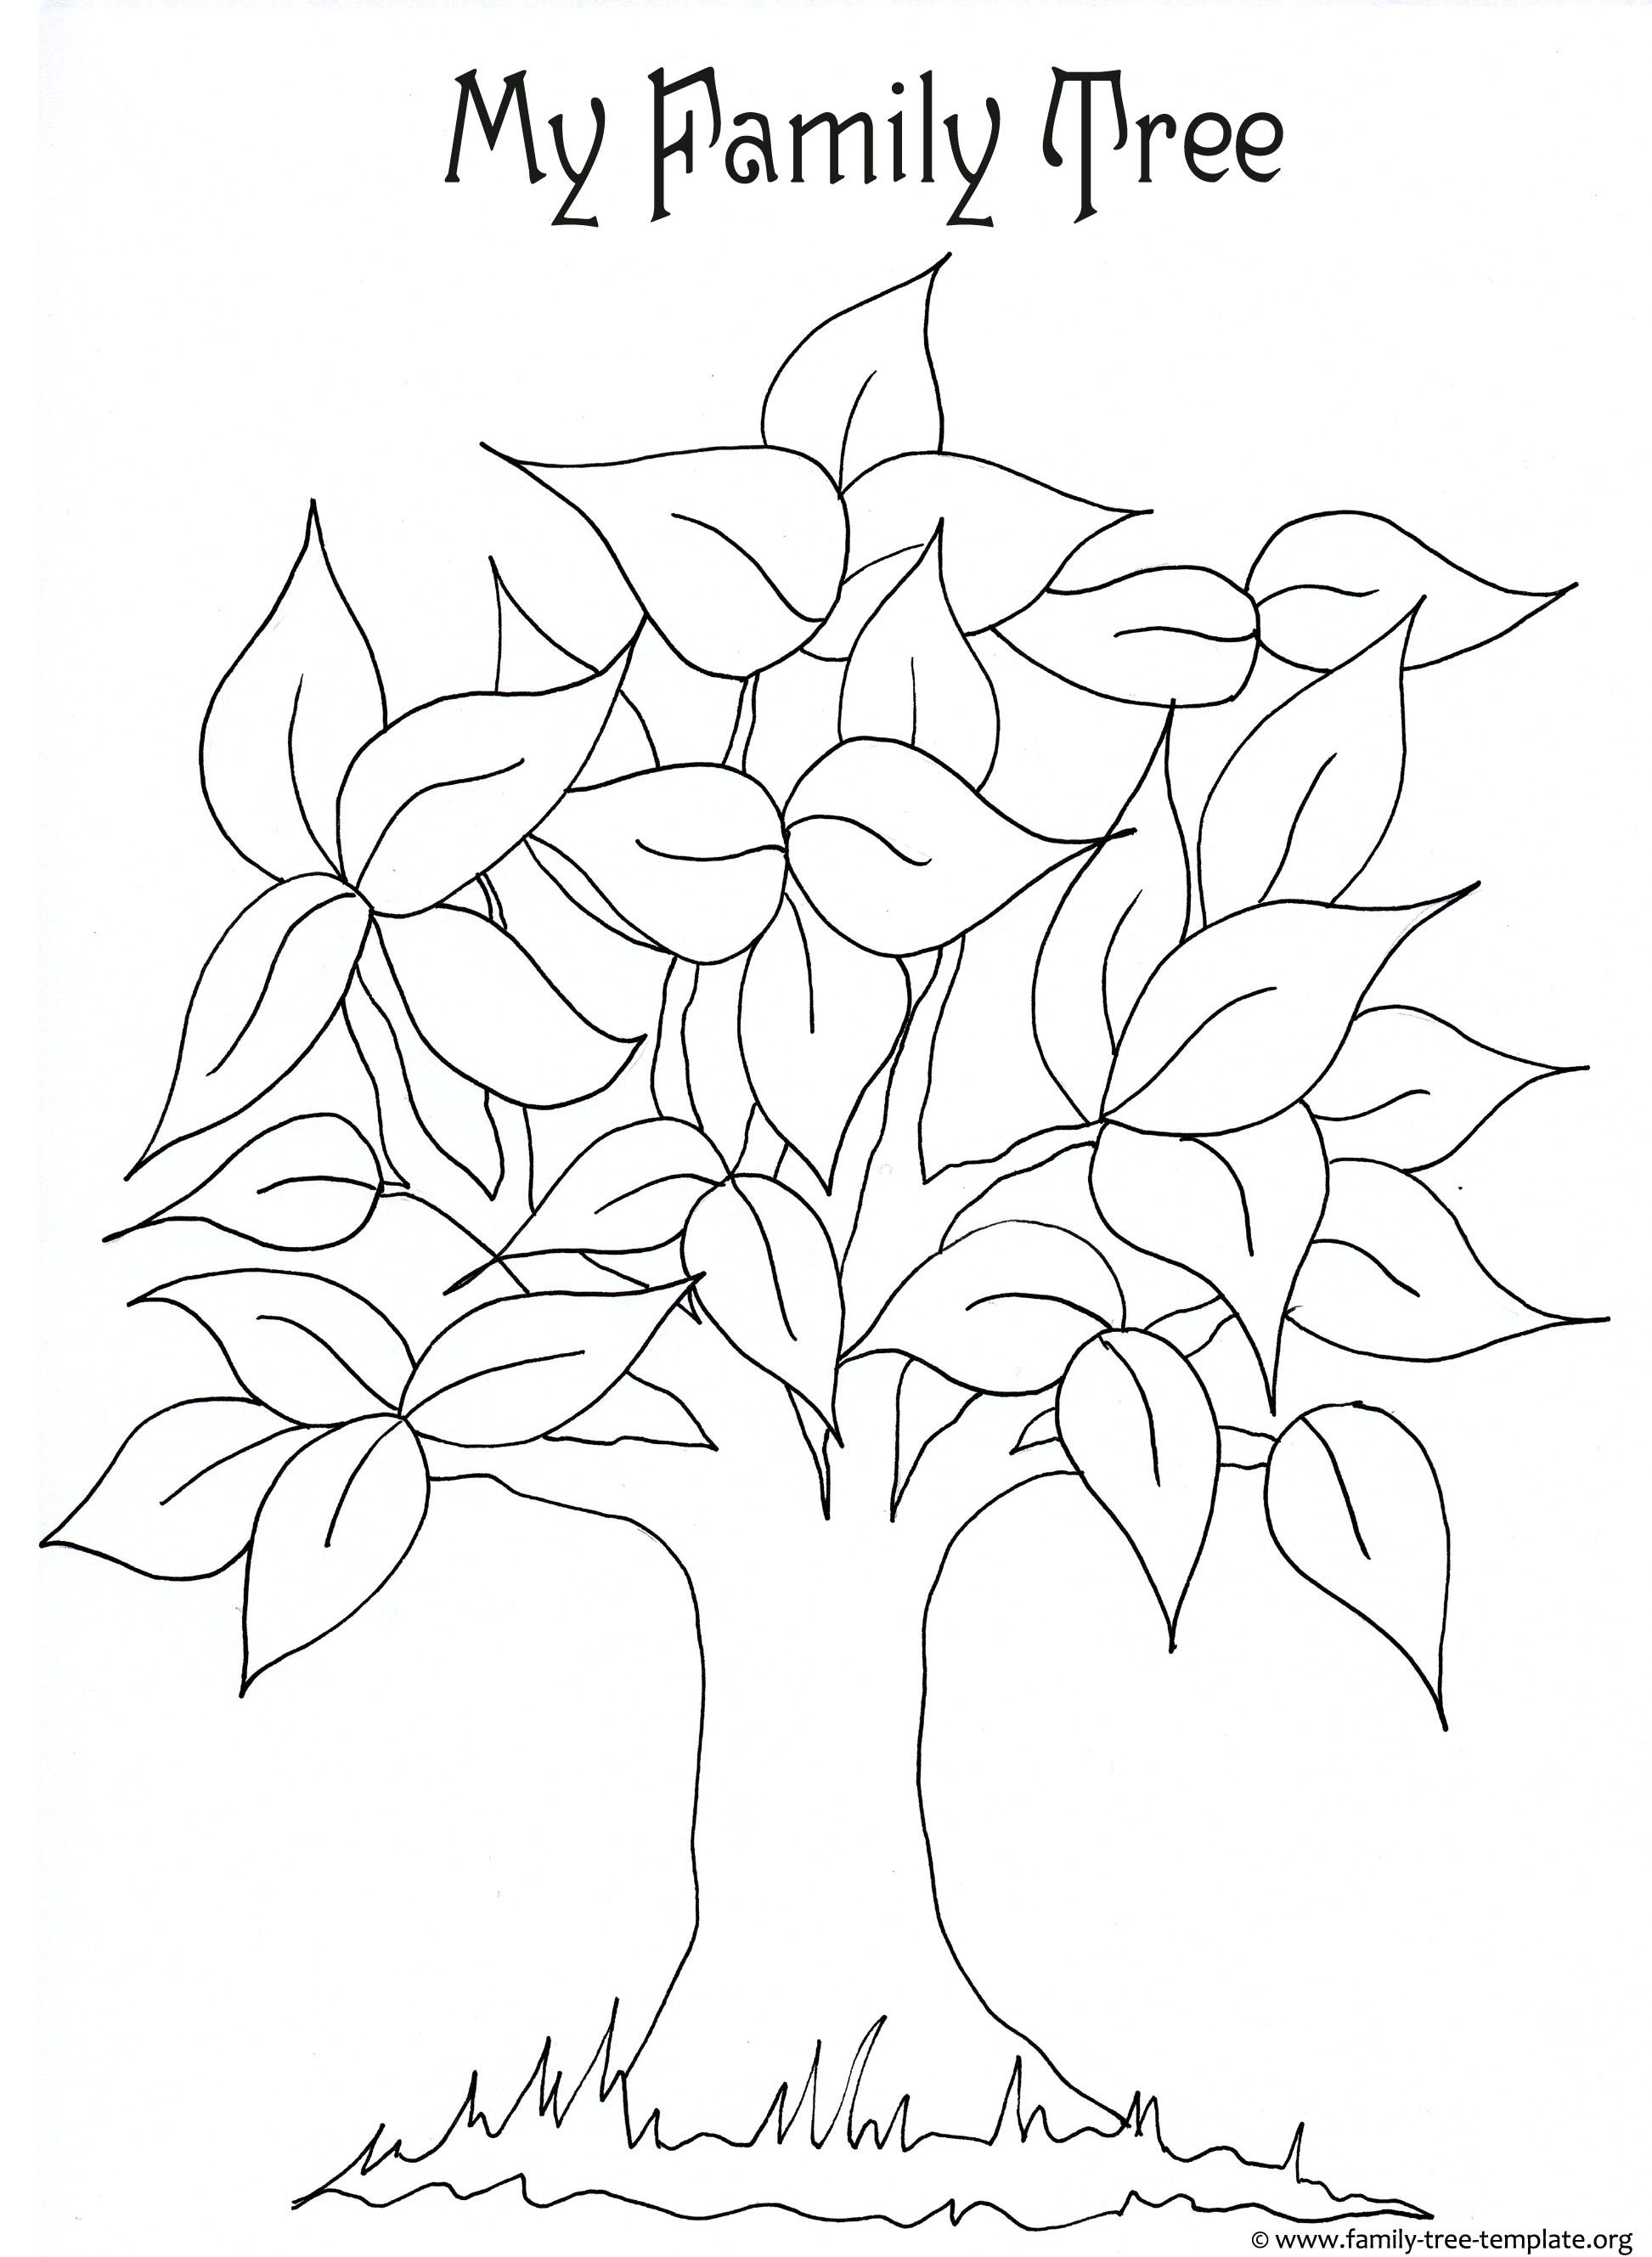 Free Printable Coloring Page For Kids With Leaves And Tree Trunk To Color